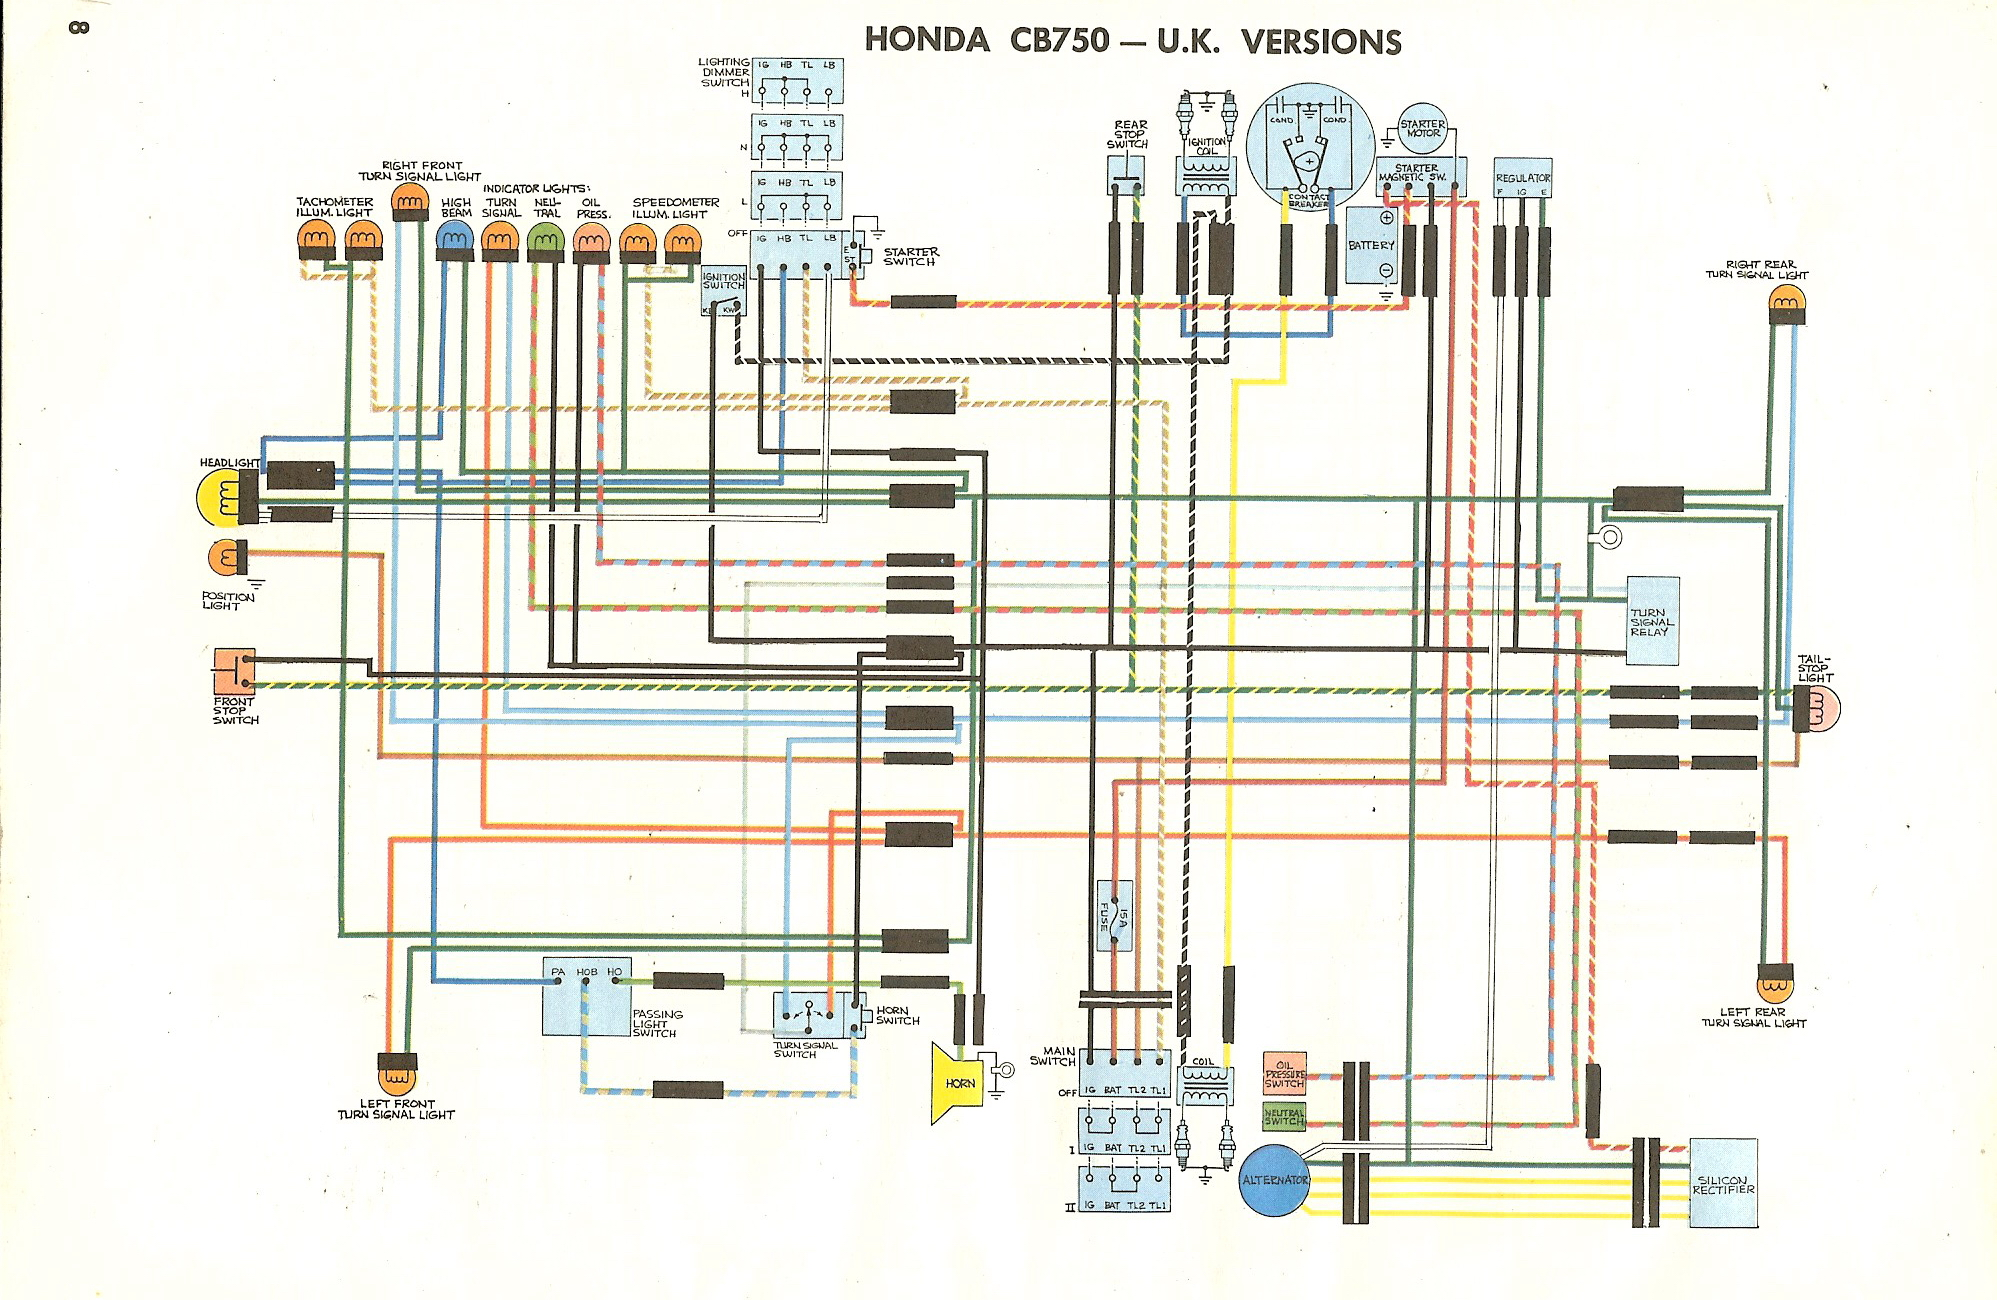 WD750UK cb750k wiring diagram motorcycle ignition wiring diagram \u2022 wiring Honda Nighthawk 450 Wiring-Diagram at gsmx.co